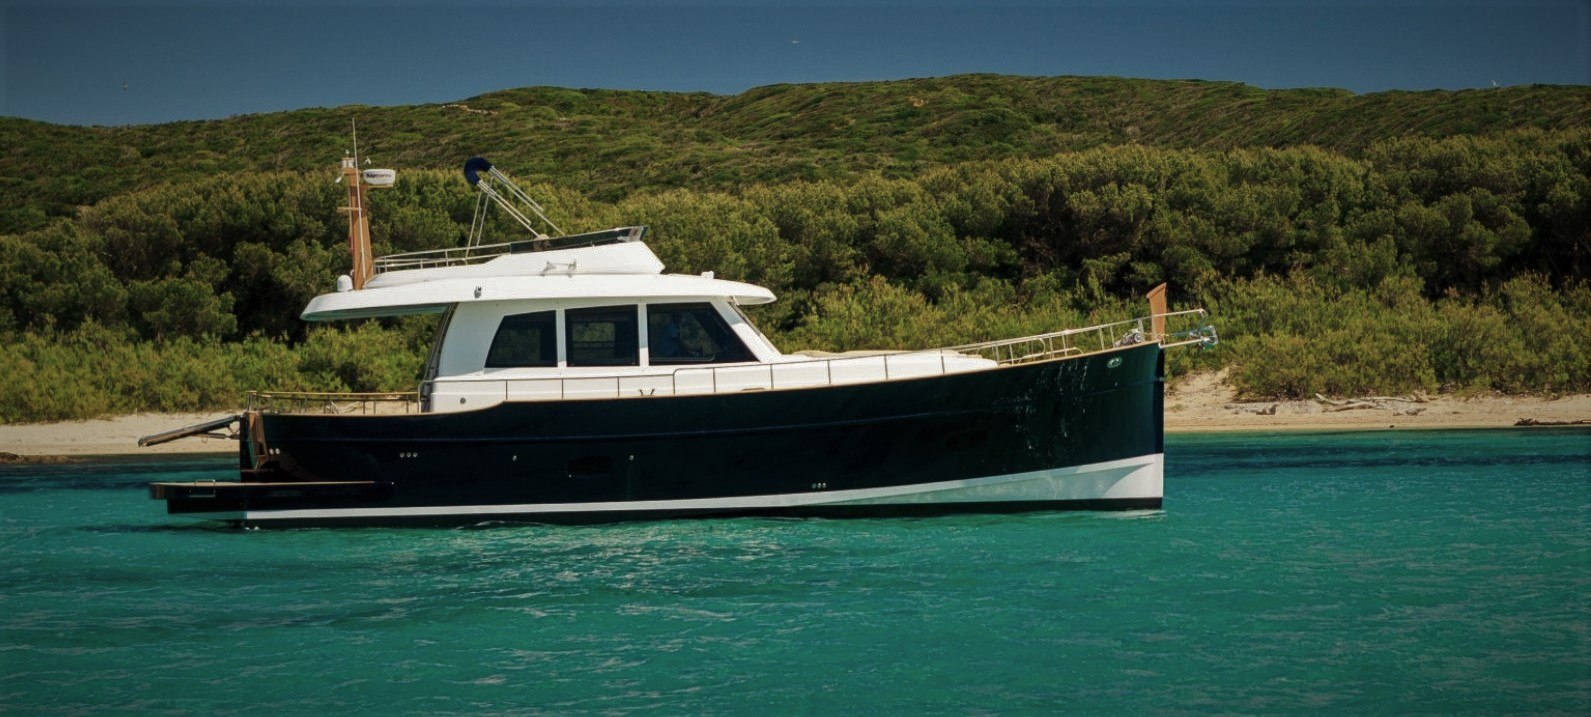 Minorca Islander 54 Flybridge - Profile